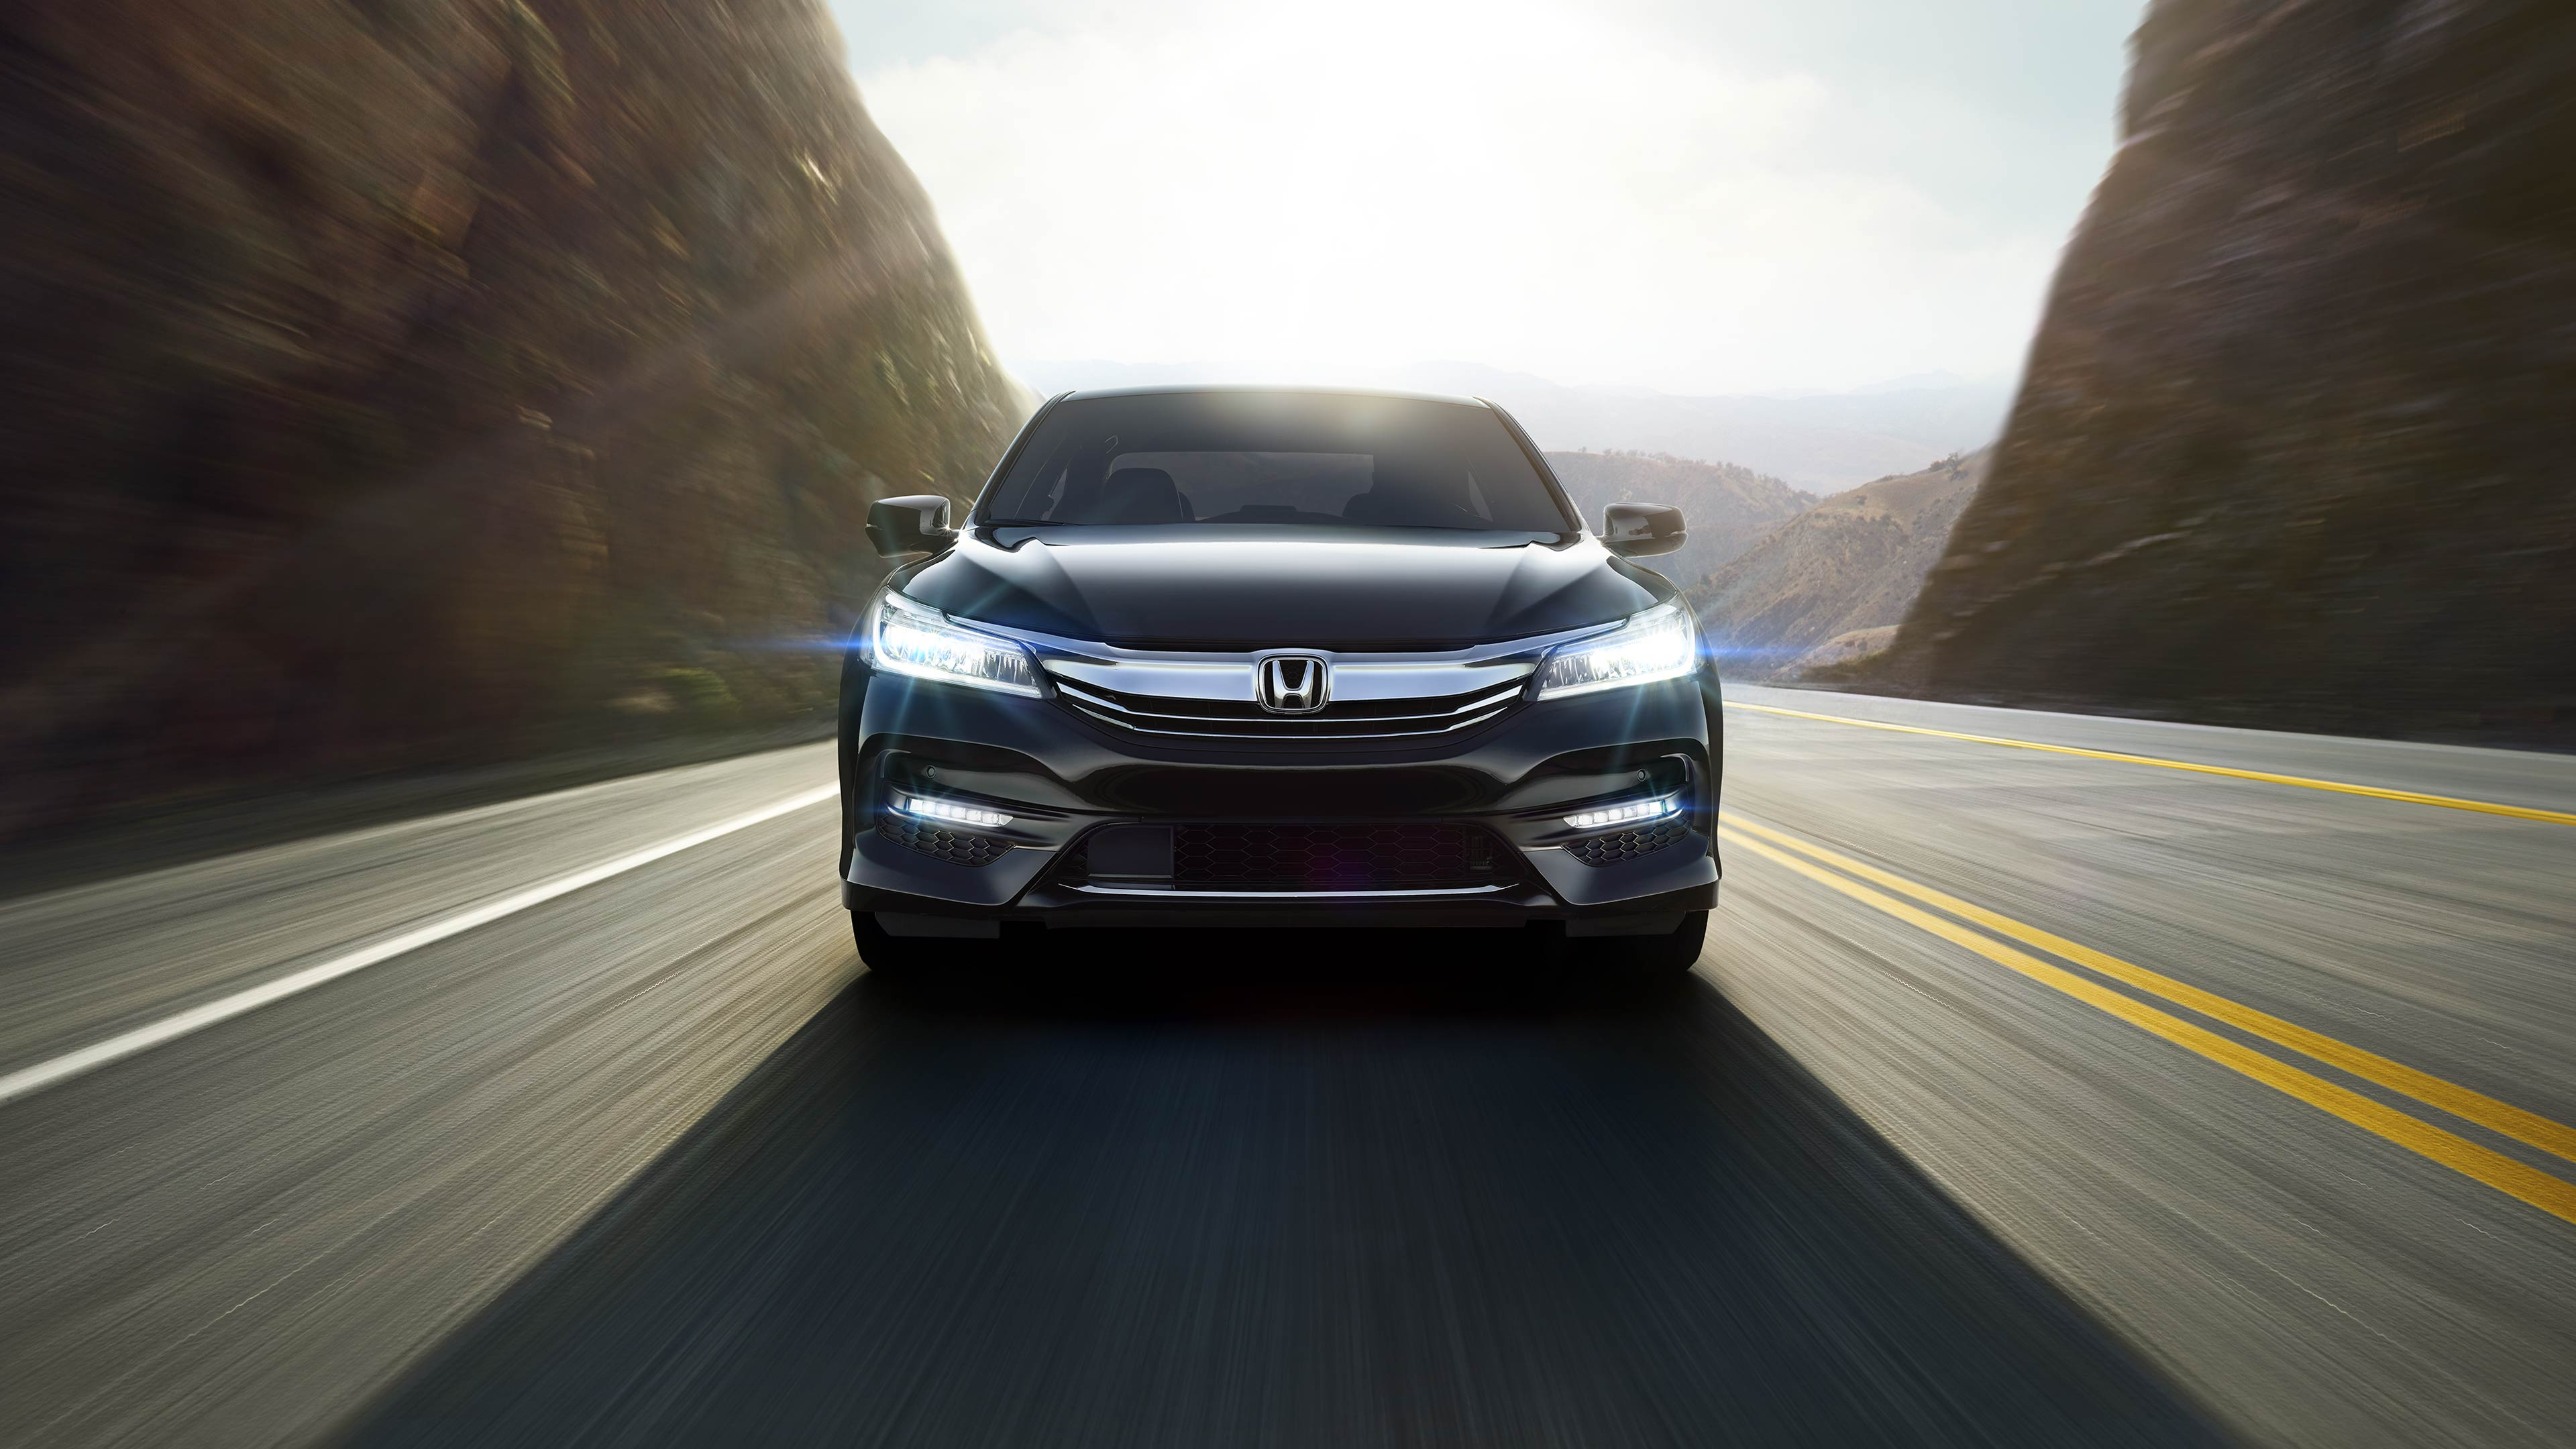 special quarter three rear price en adds value oriented sport accord news honda driven edition